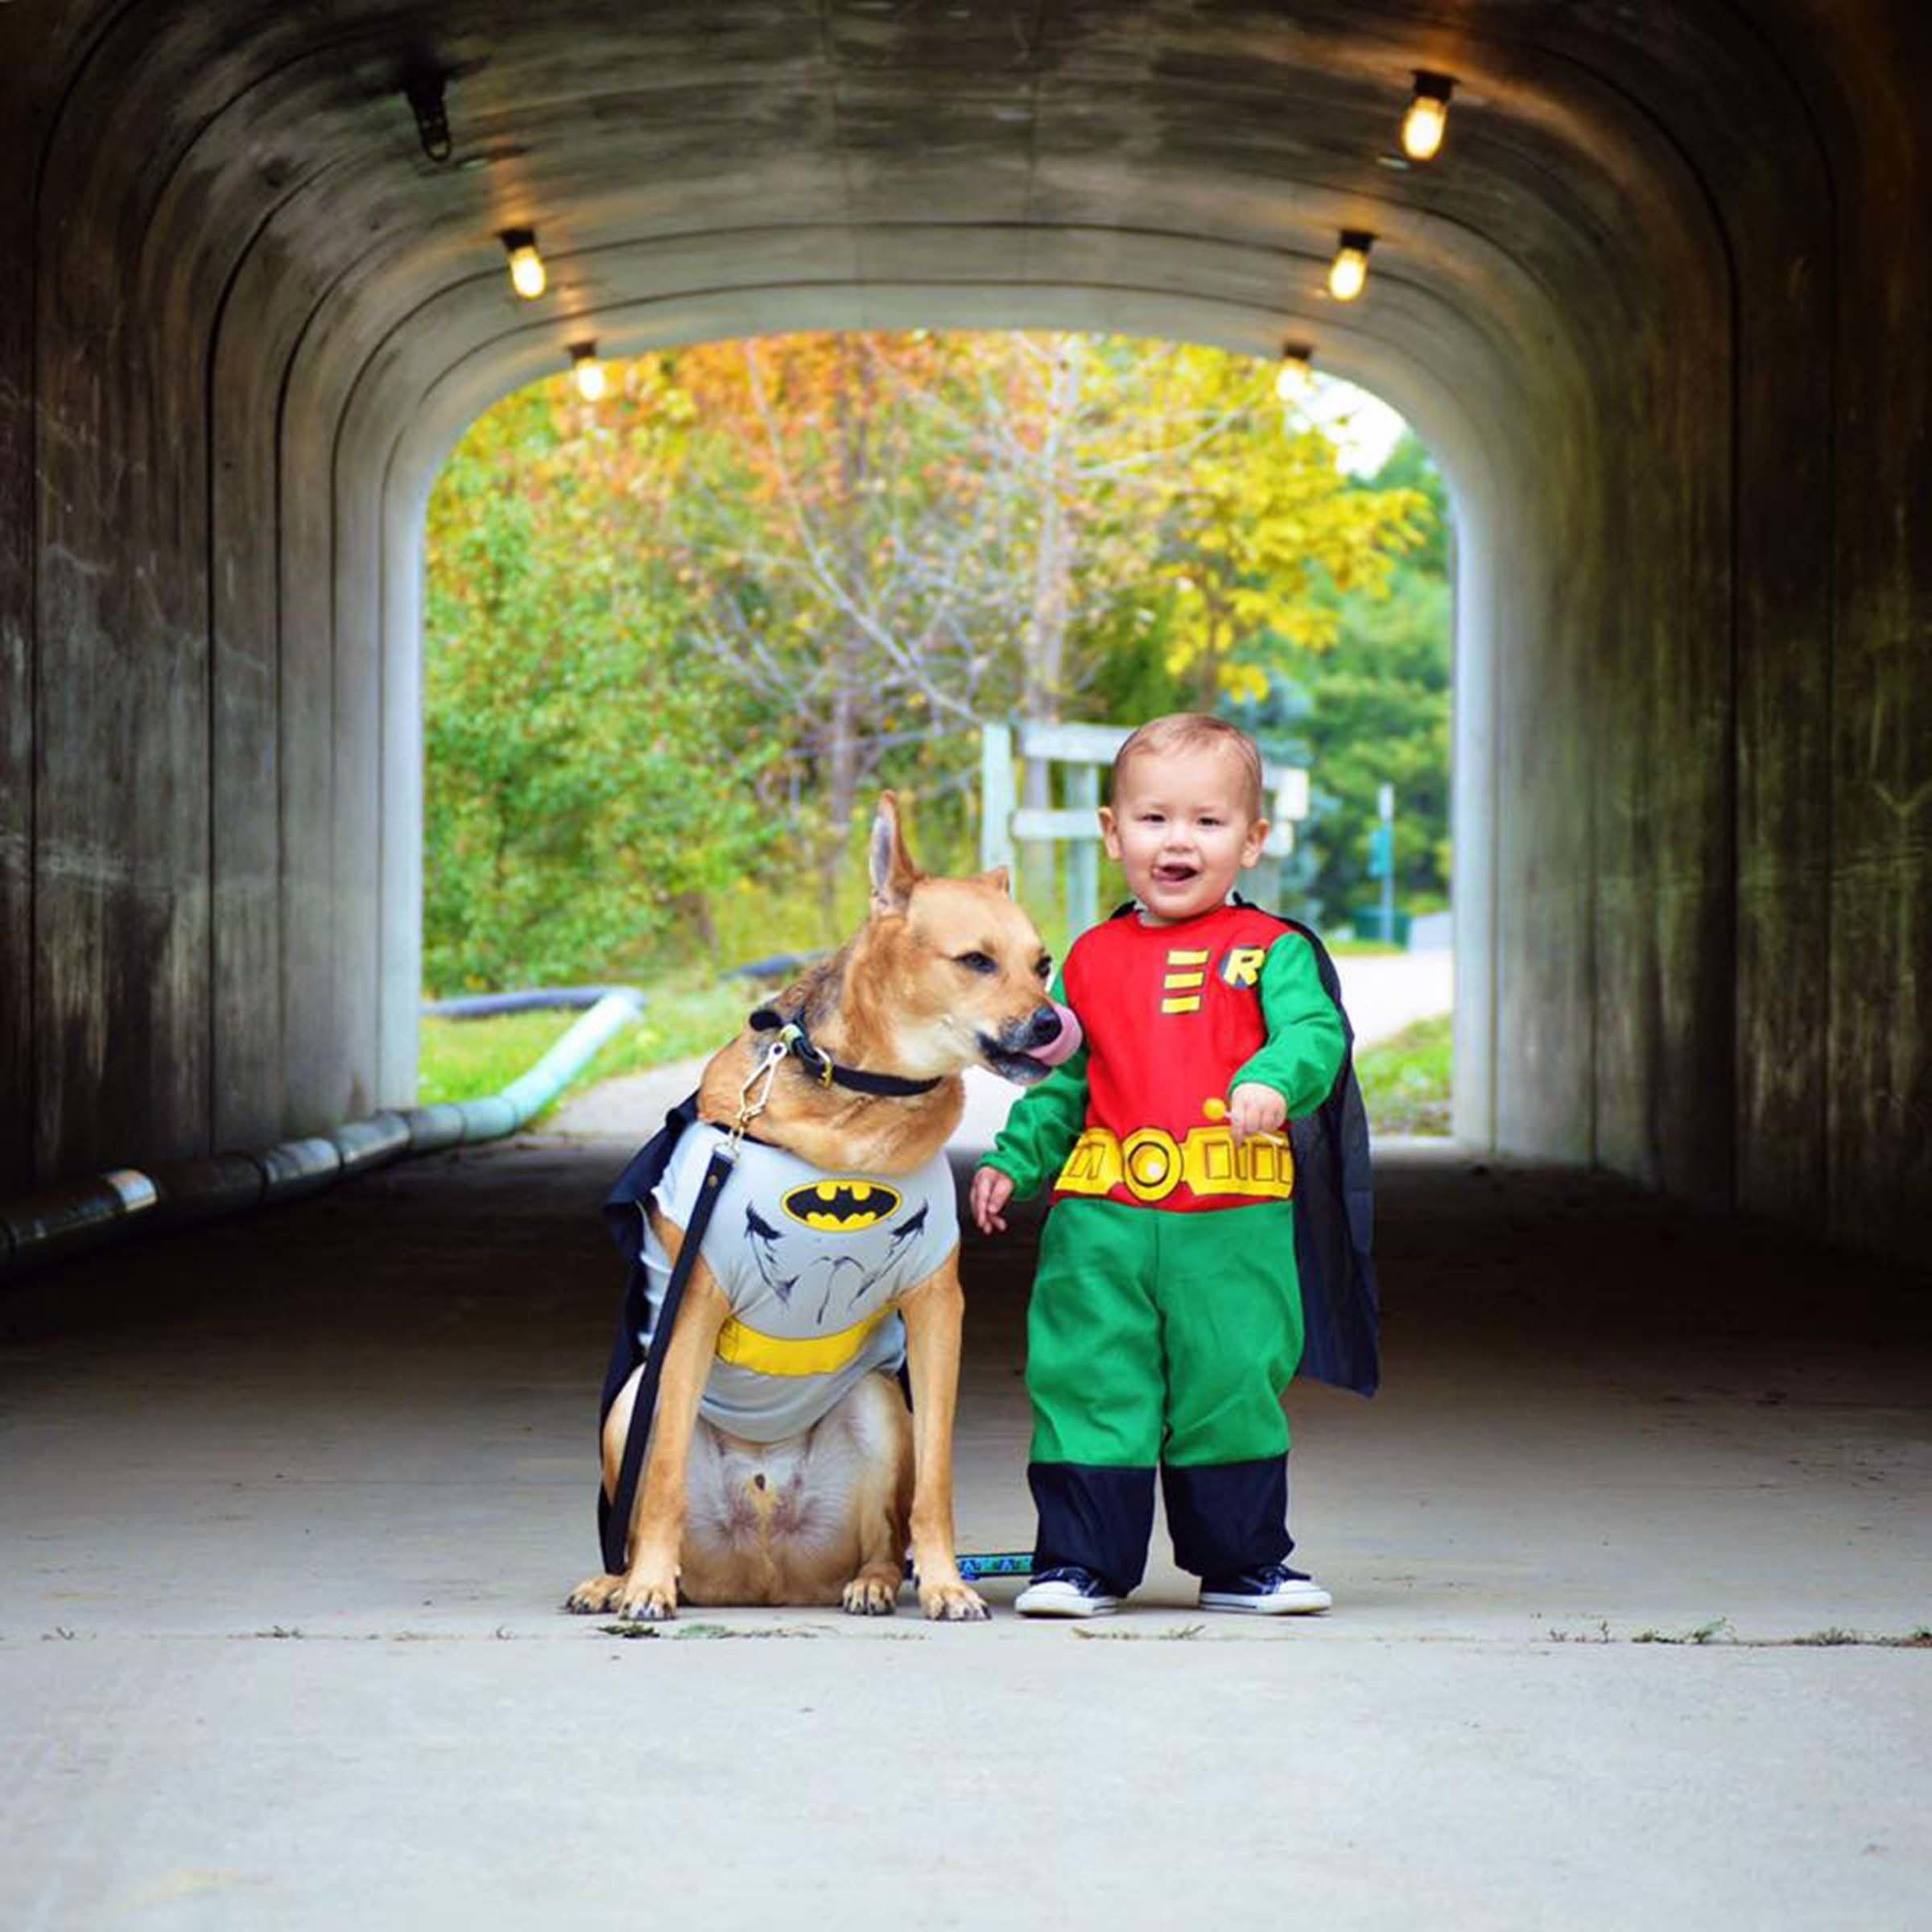 Courtesy ofu0026nbsp;Devin Crouch  sc 1 st  HuffPost & 23 Dog And Kid Halloween Costumes That Will Make You Squeal | HuffPost